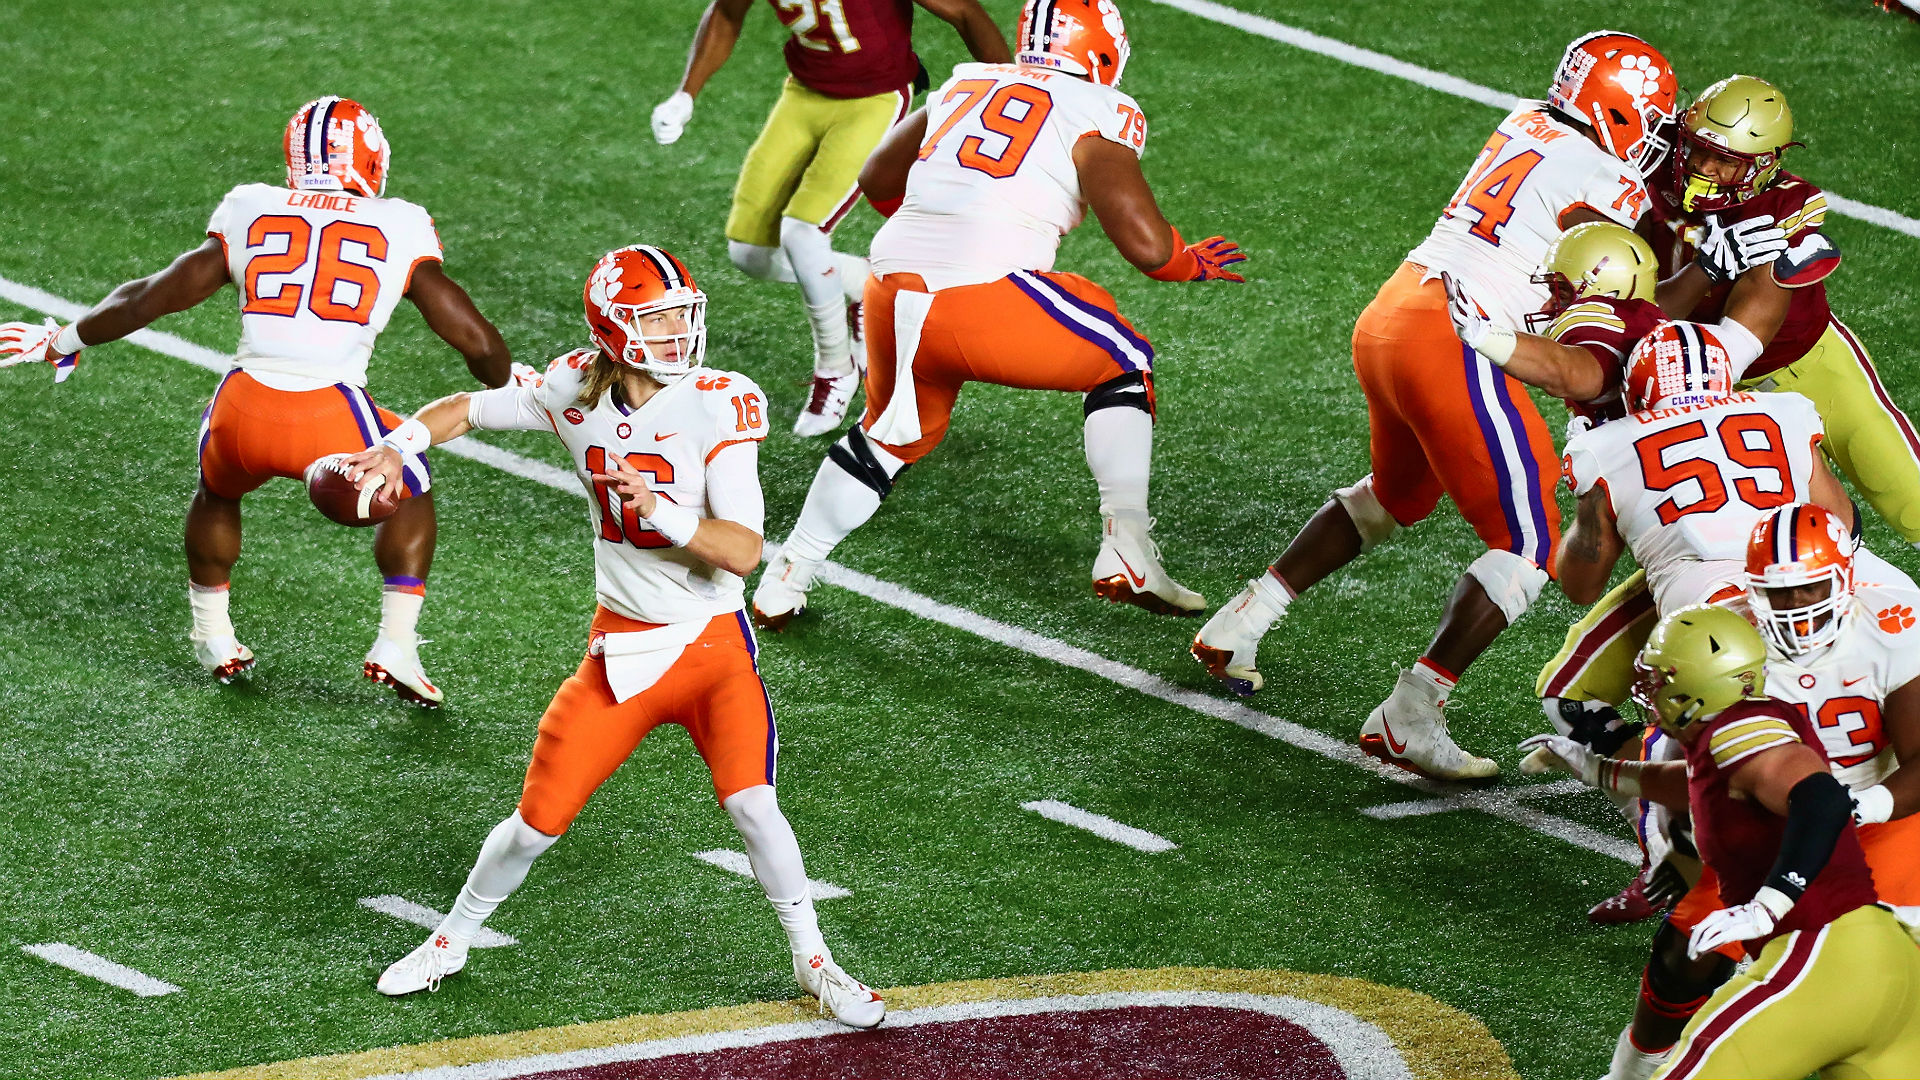 Clemson Vs Boston College Results Tigers Clinch Spot In Acc Title Game With Win Over Eagles